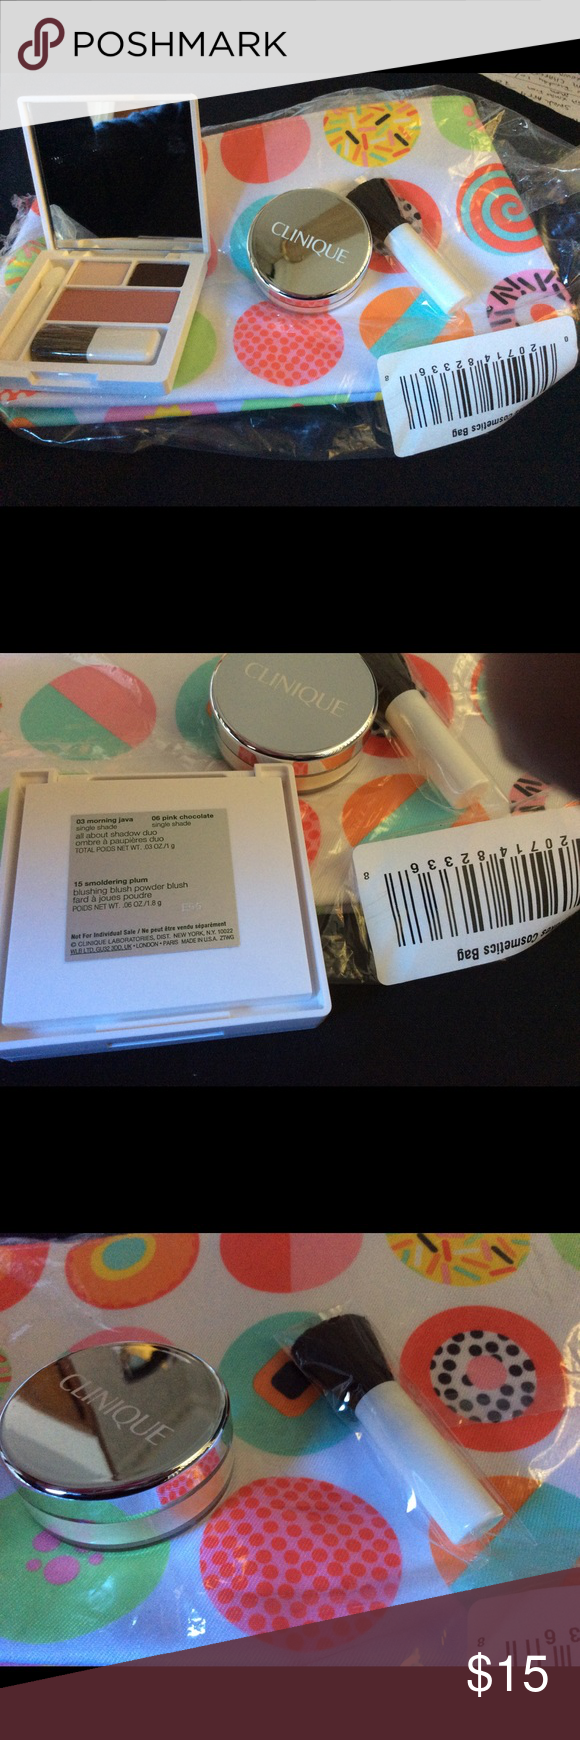 Clinique 1 Redness Solution, 1 Blush & Eye & A Bag This